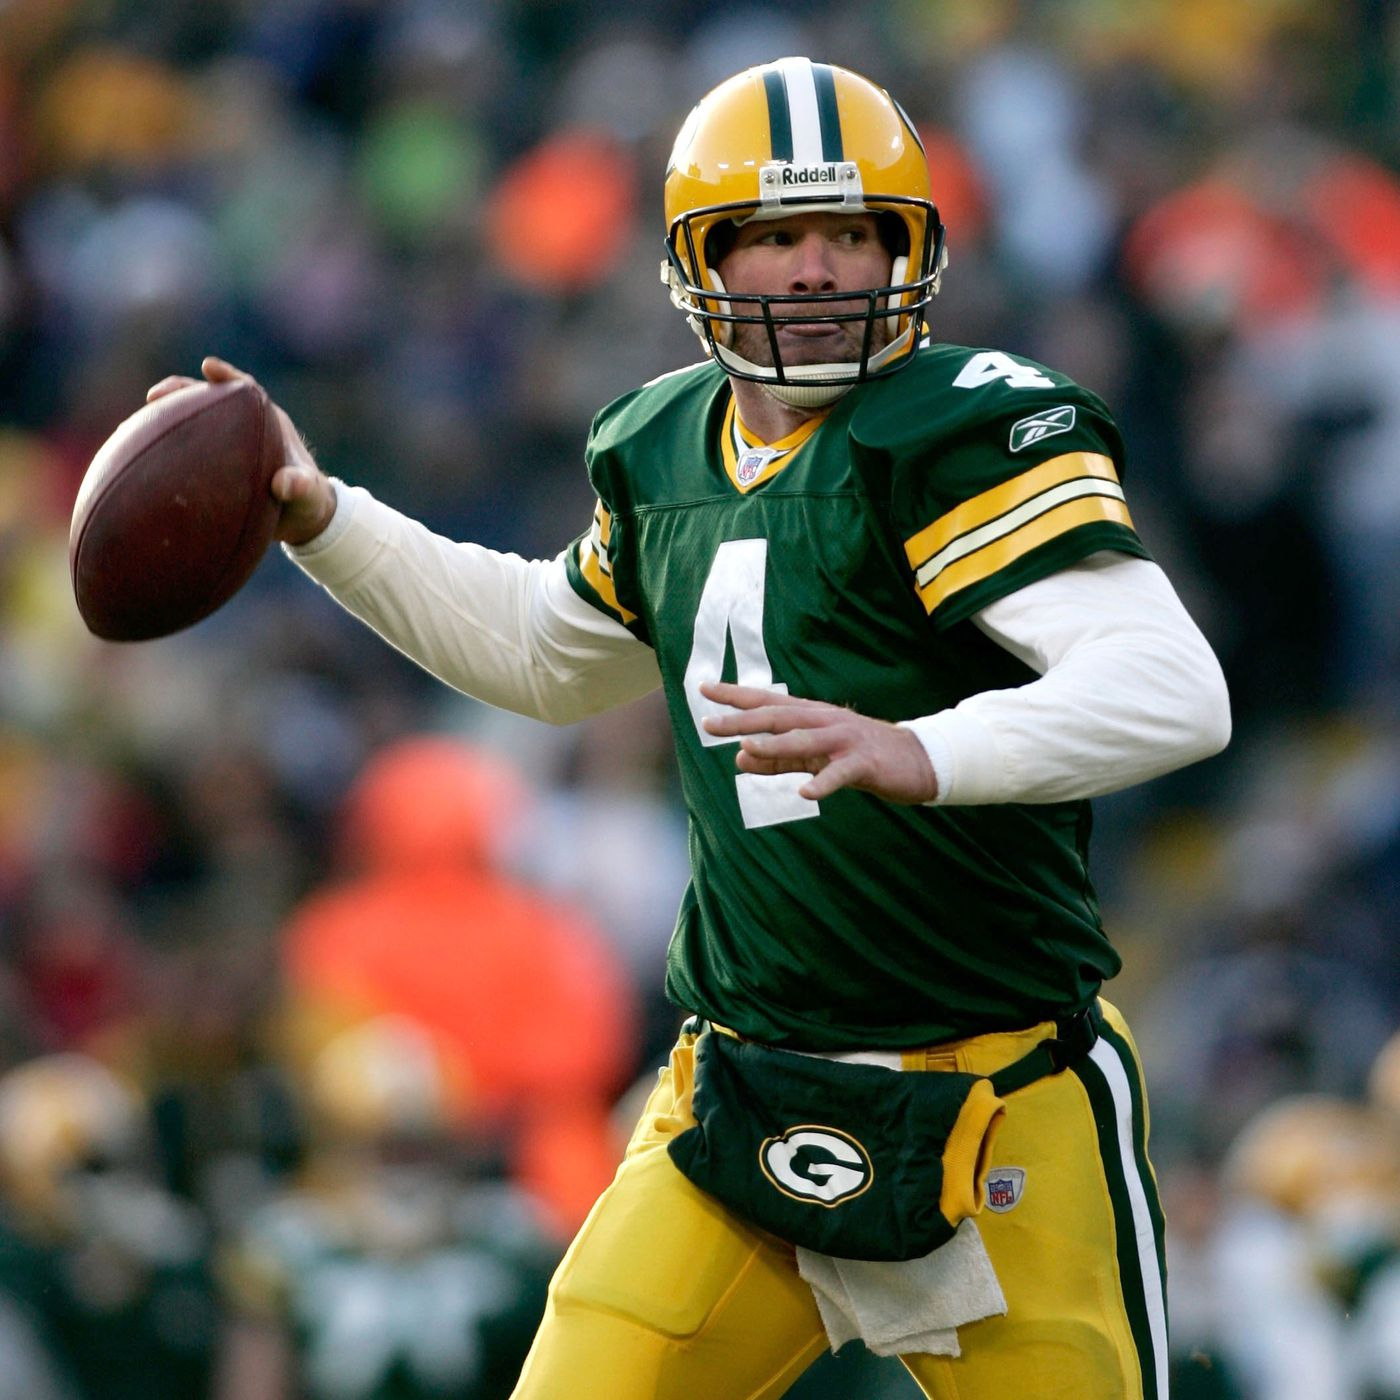 separation shoes 19fac e43dc Looking back at Brett Favre's good, bad, and obscure NFL ...